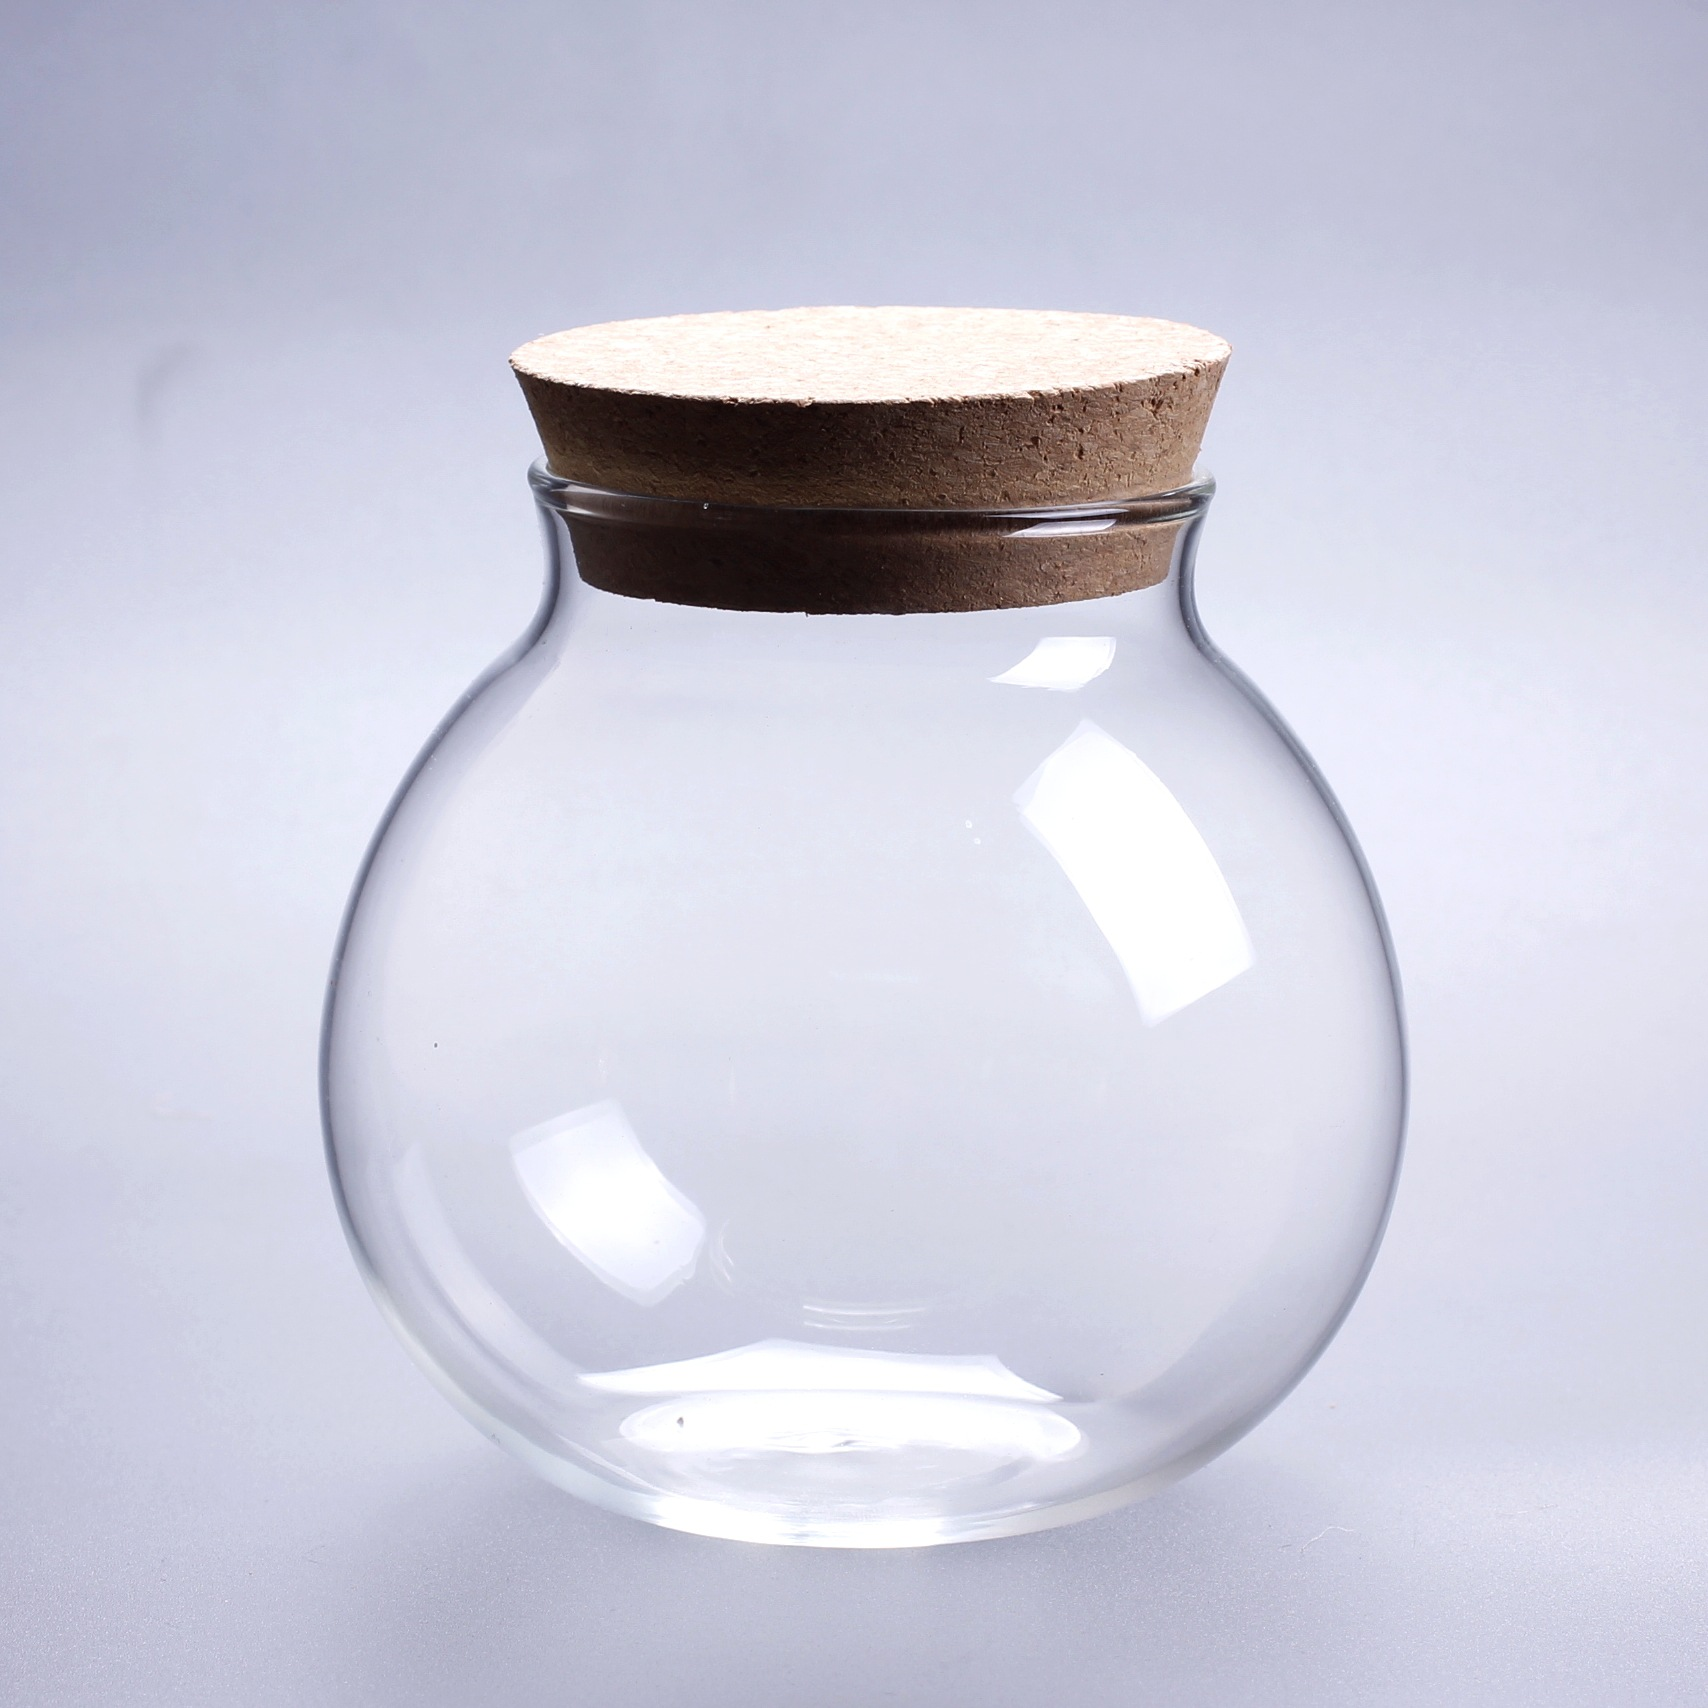 micro landscape glass bottle glass vase mouth ball moss diy glass bottle home decoration 10 10. Black Bedroom Furniture Sets. Home Design Ideas